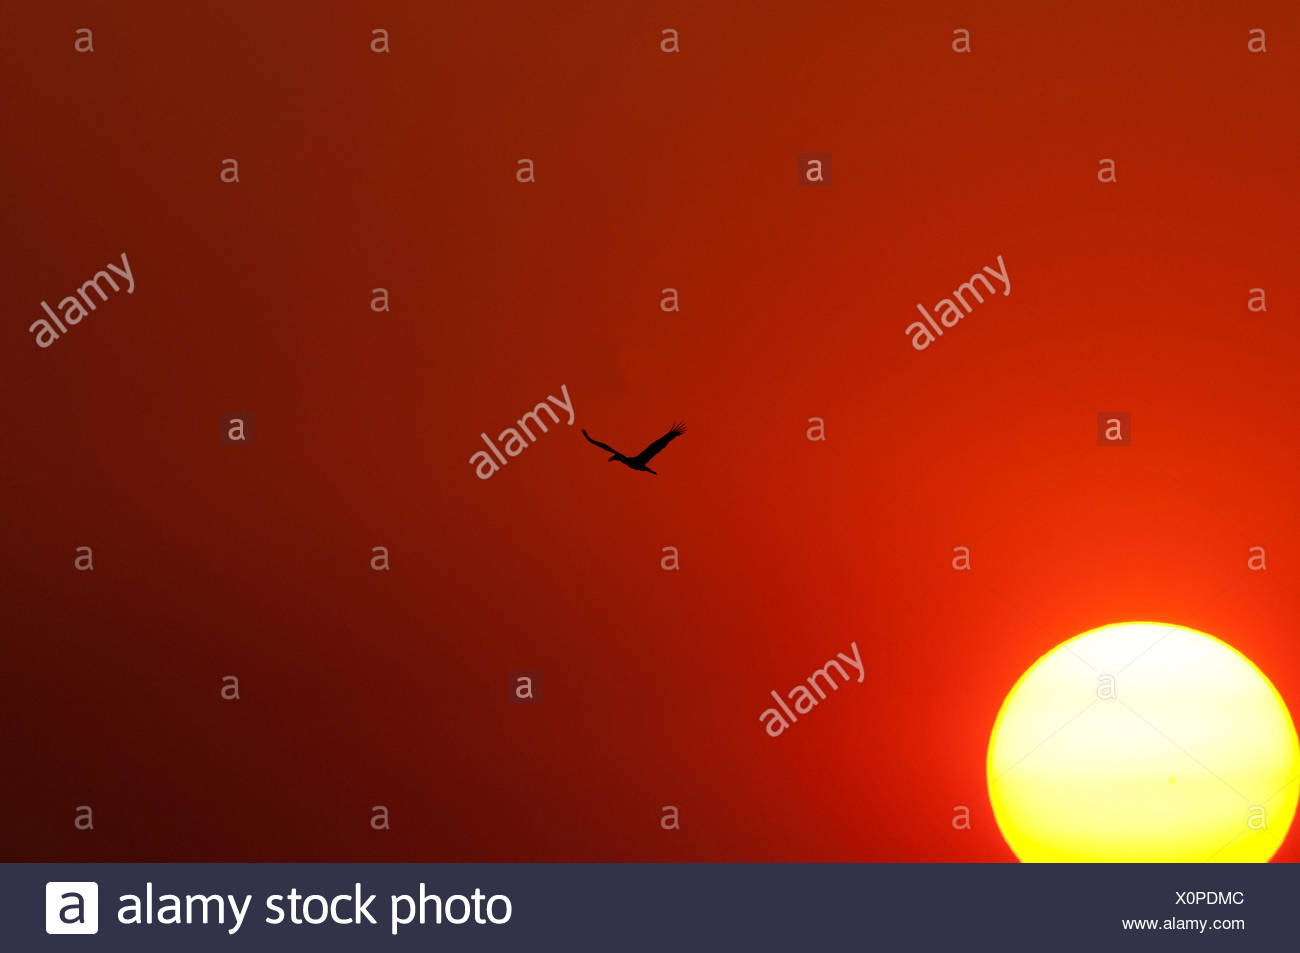 Asian openbill, flying, Thailand, Bec, ouvert indien, bird, wader, anastomus oscitans, flight, sunset - Stock Image